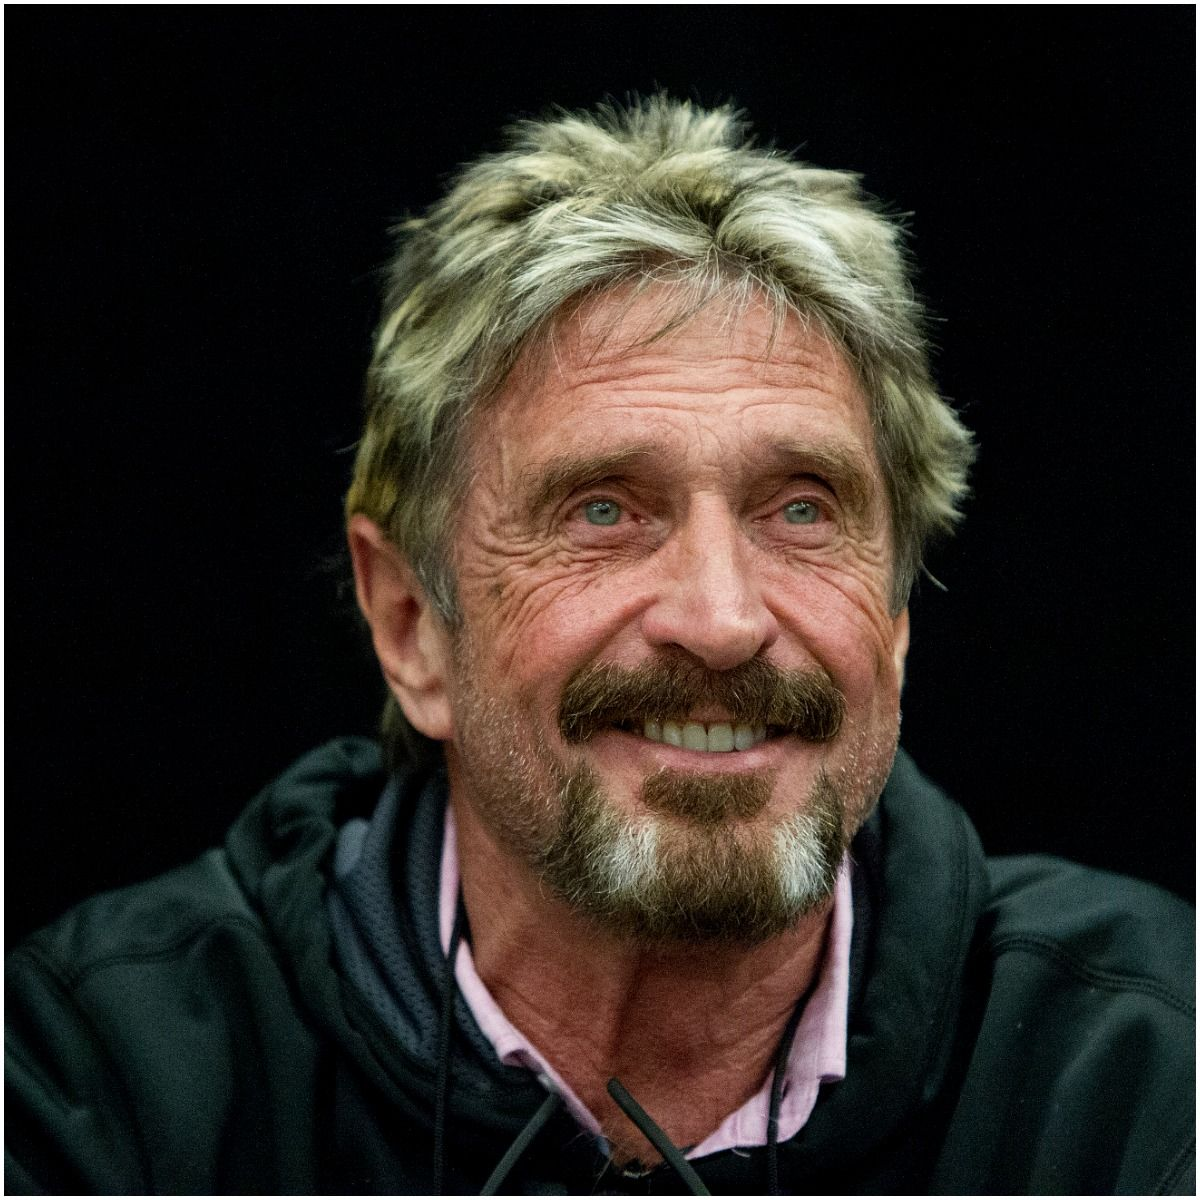 what is the net worth of John McAfee